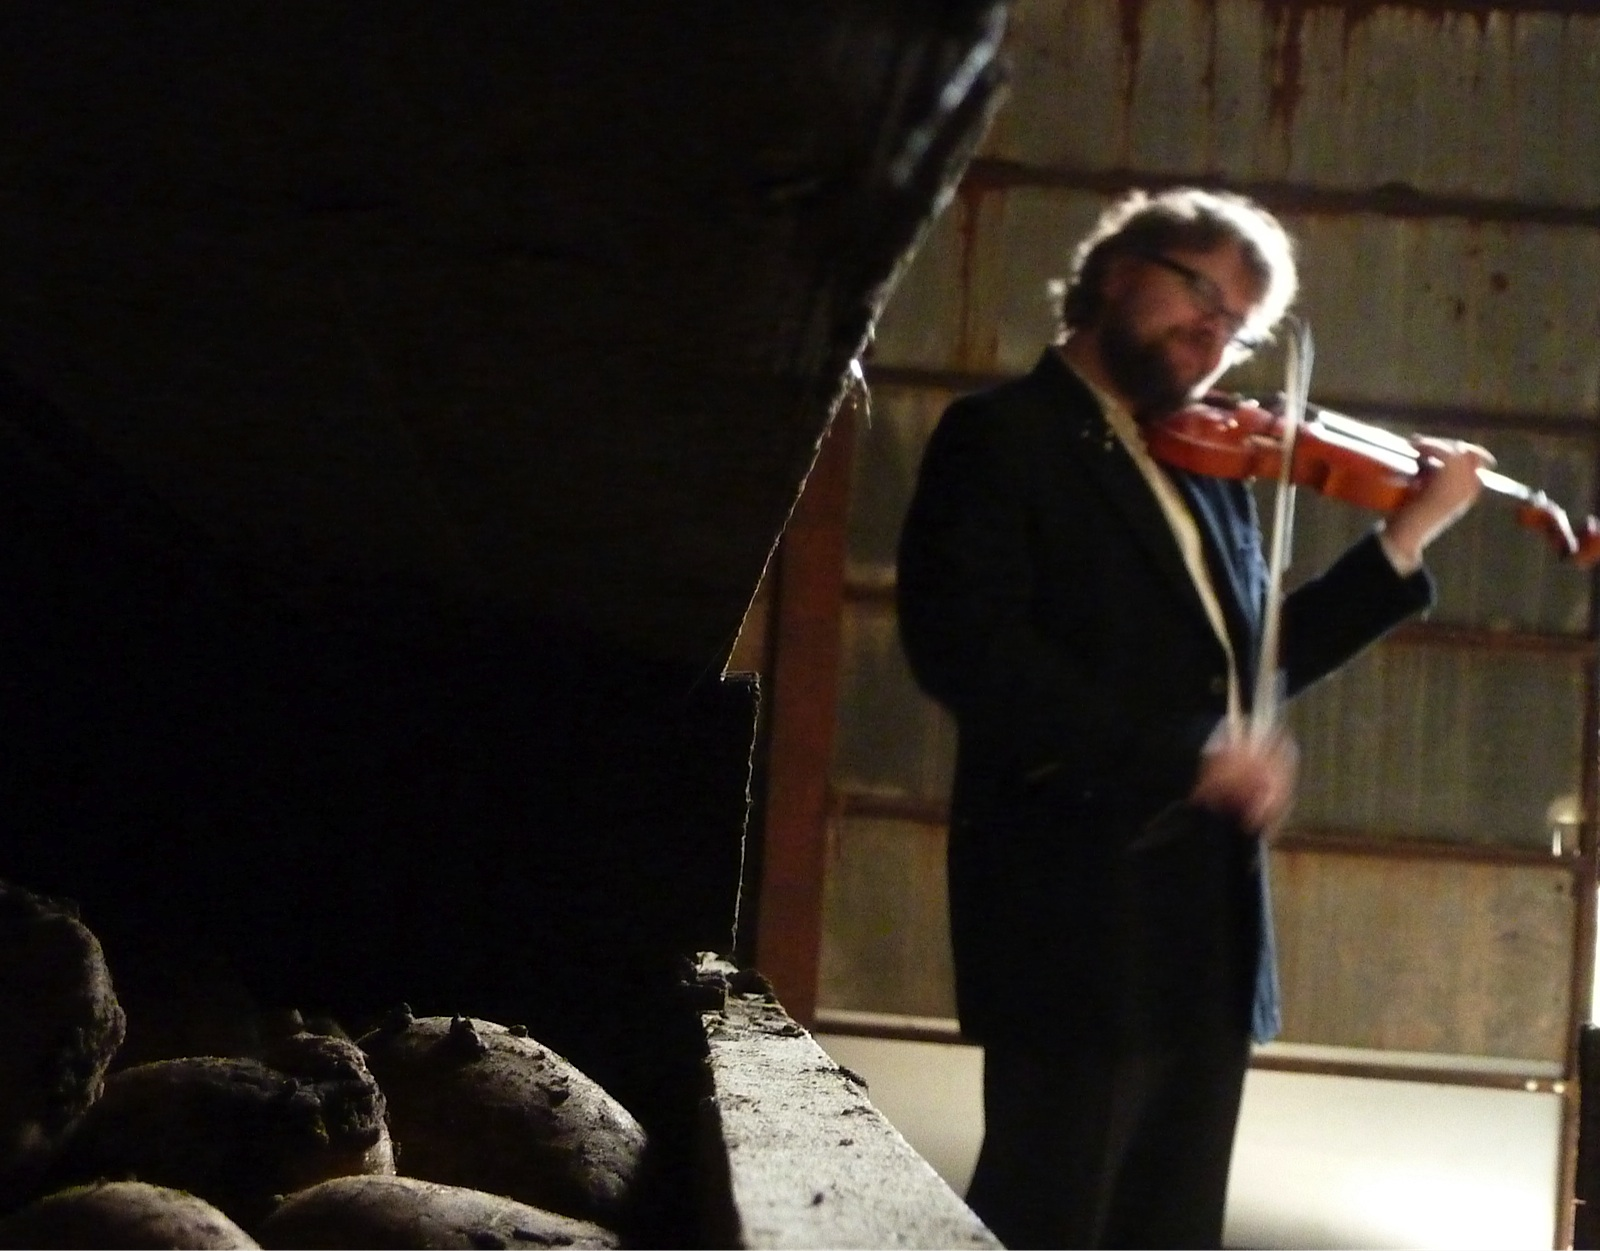 Violinist Alexander Janiczek in the Cambo potato barn